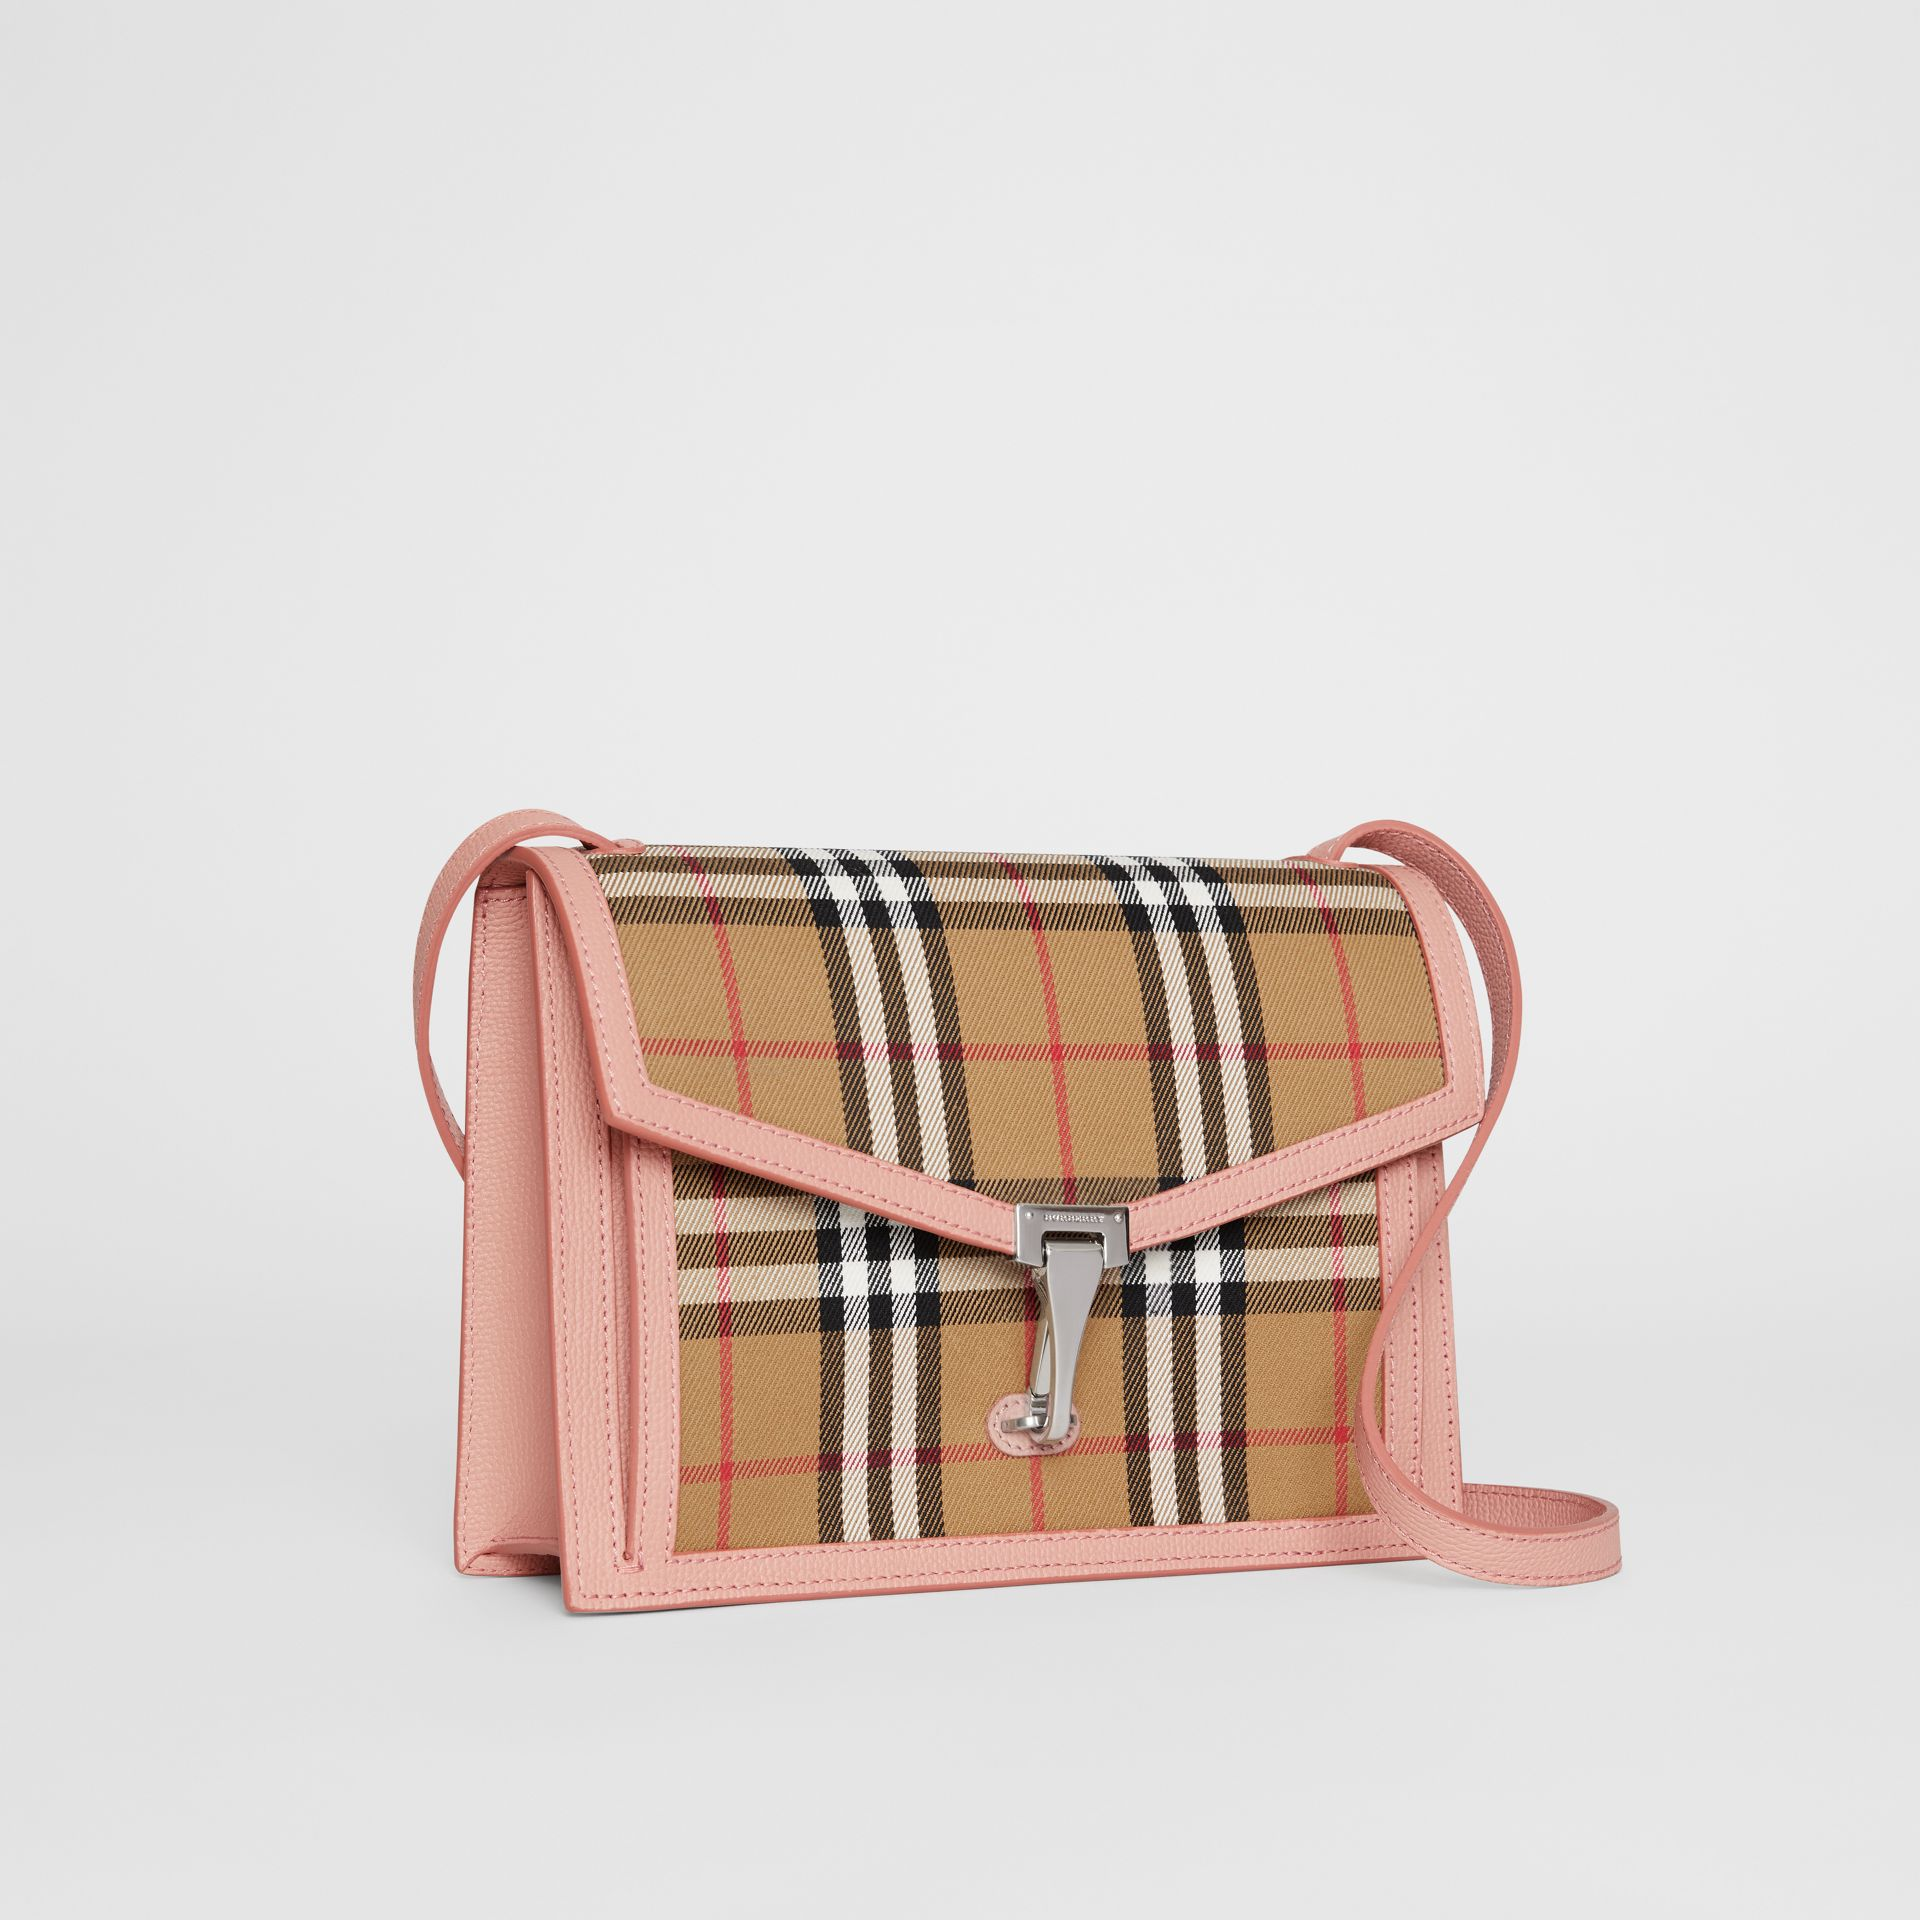 Small Vintage Check and Leather Crossbody Bag in Ash Rose - Women | Burberry Singapore - gallery image 6